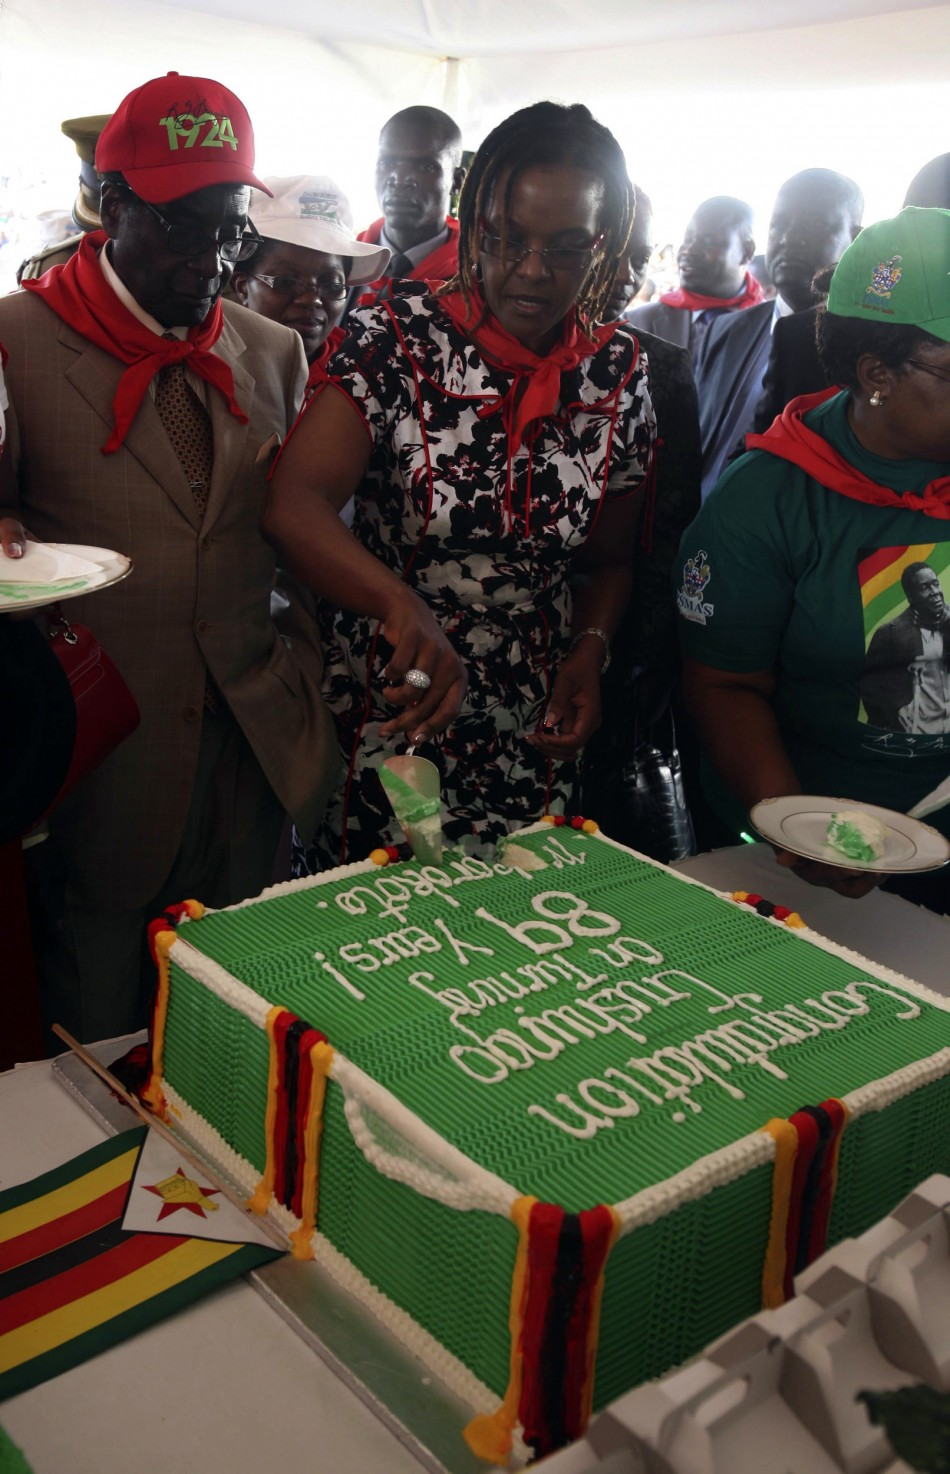 Zimbabwes President Robert Mugabe looks at his wife Grace cutting a cake during an event marking his 89th birthday at Chipadze stadium in Bindura, about 90 km 56 miles north of the capital Harare March 2, 2013. Addressing a rally to mark his 89th